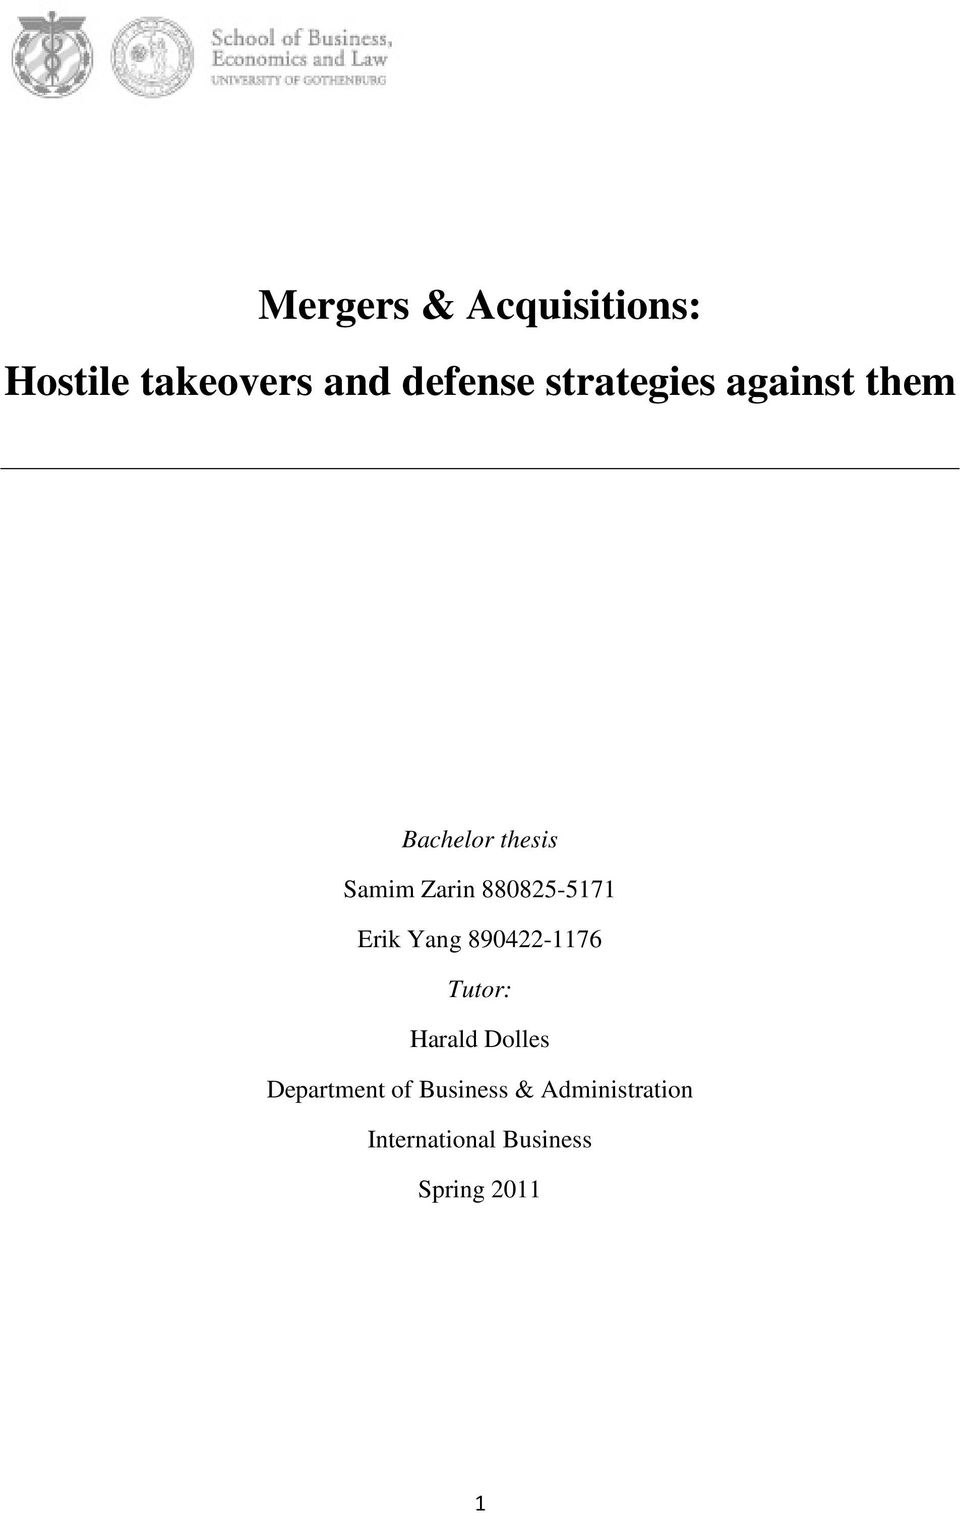 bachelor thesis mergers and acquisitions The bachelor thesis deals with success factors of m&a in the automotive industry  keywords: m&a, mergers, acquisitions, success factors, automotive, transaction  1 1 introduction this first chapter of the thesis illustrates the relevance of this study by presenting.